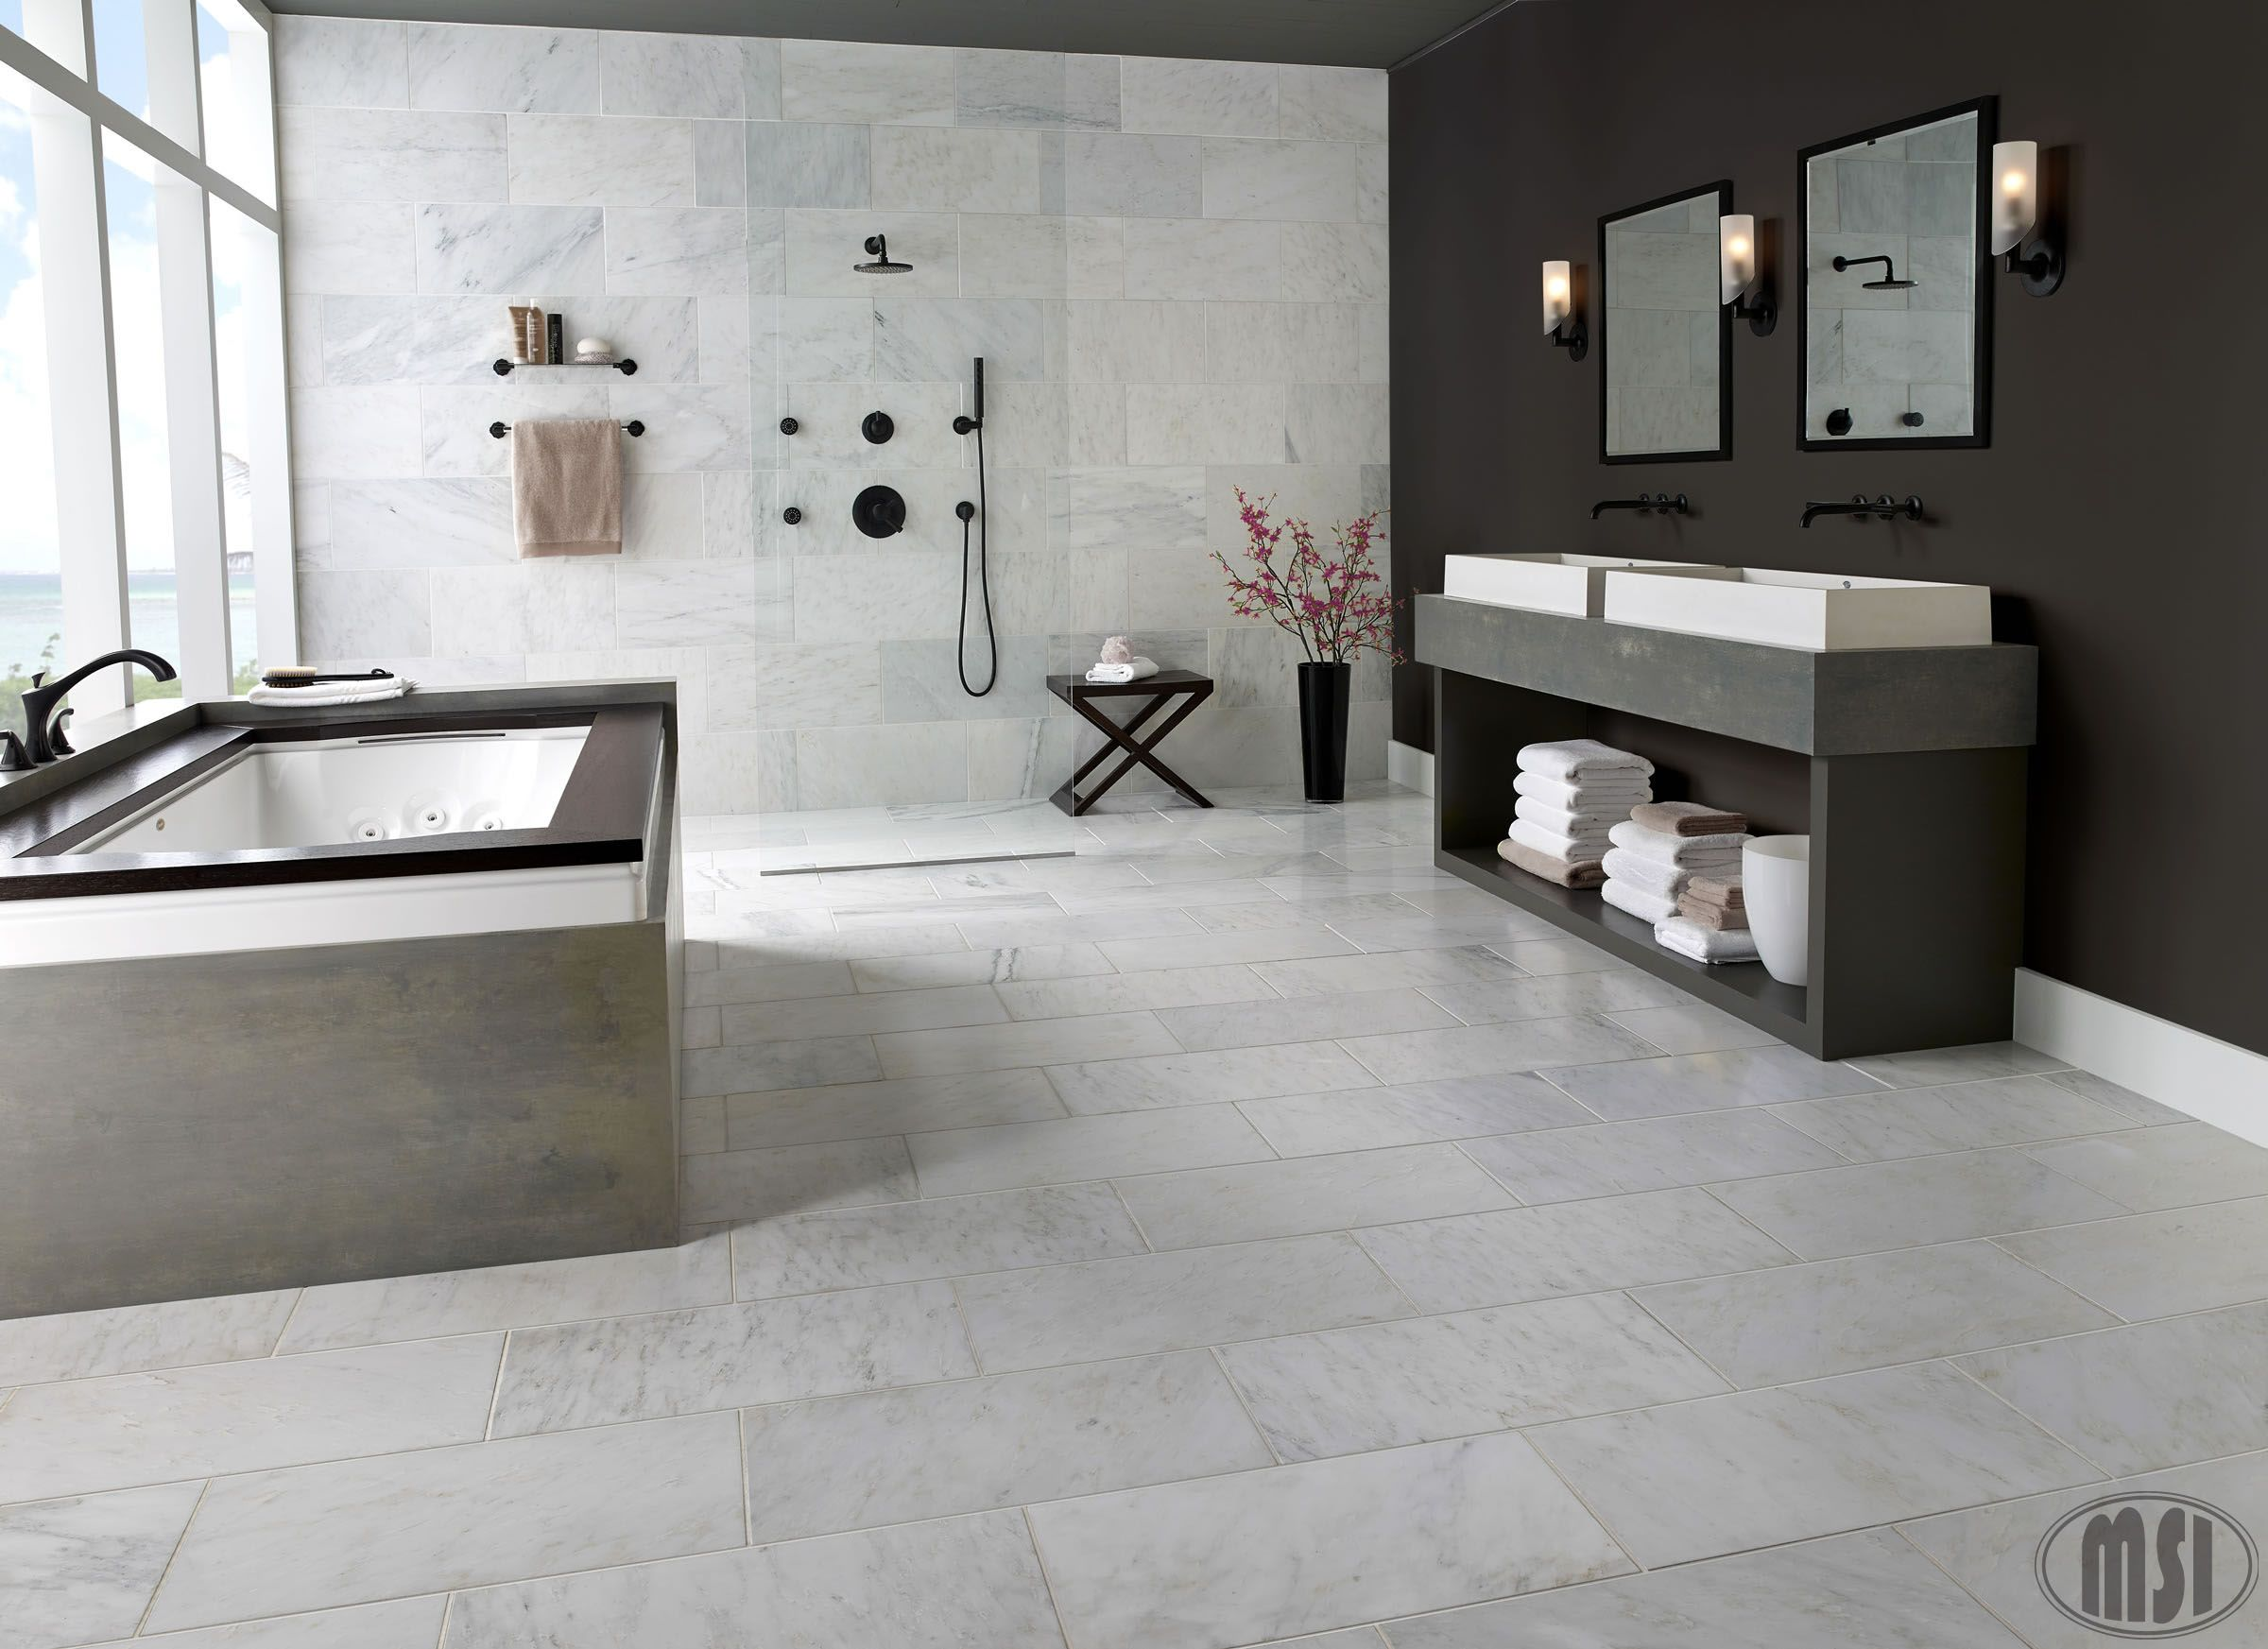 Marble Bathroom Tile dreamy white marble bathrooms are the best! modern or traditional